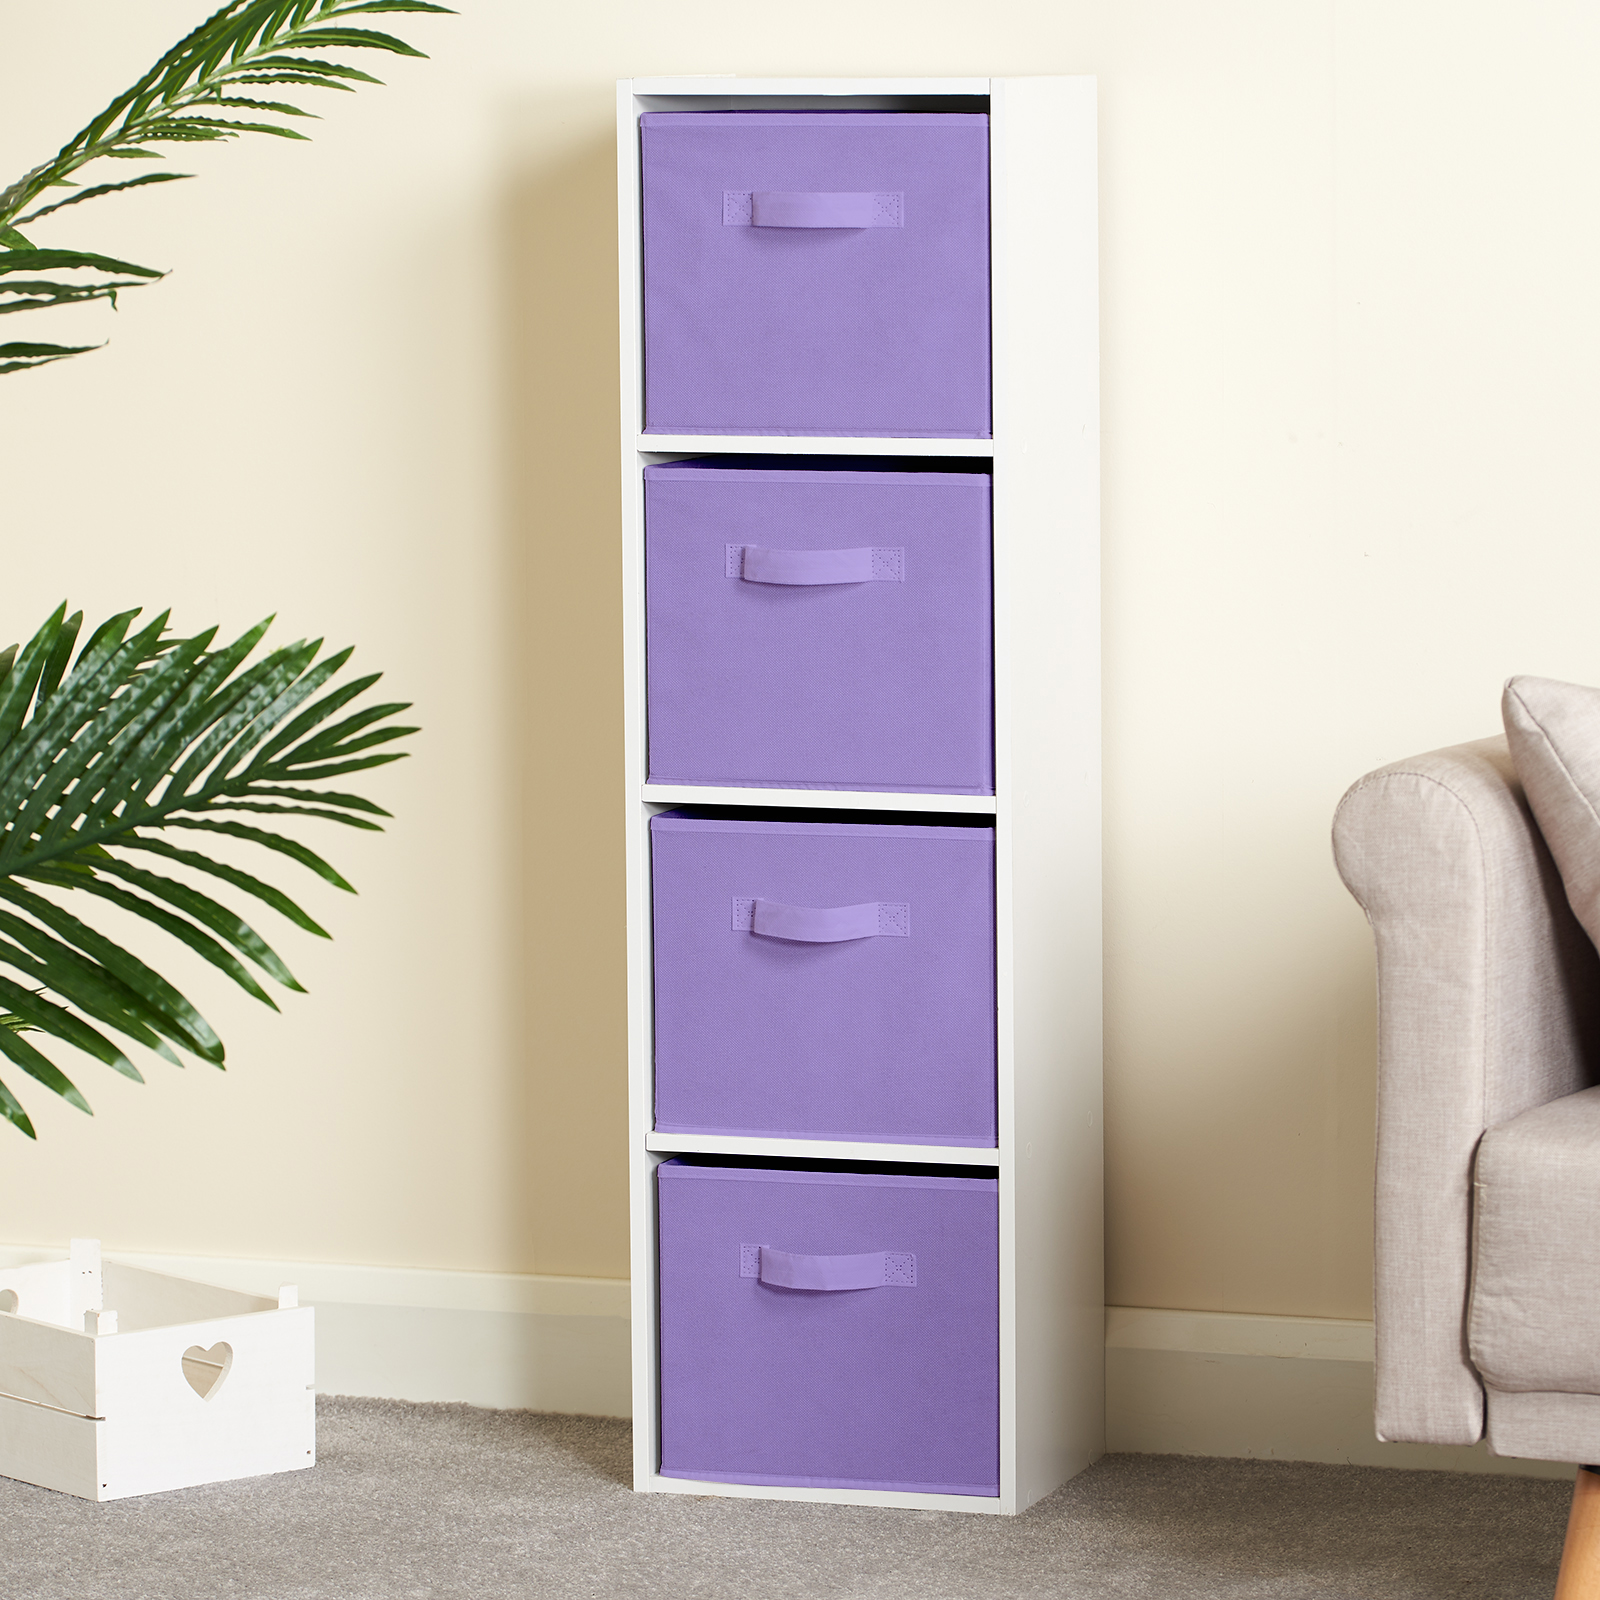 Hartleys-4-Tier-White-Bookcase-Wooden-Display-Shelving-Unit-amp-Fabric-Storage-Box thumbnail 26